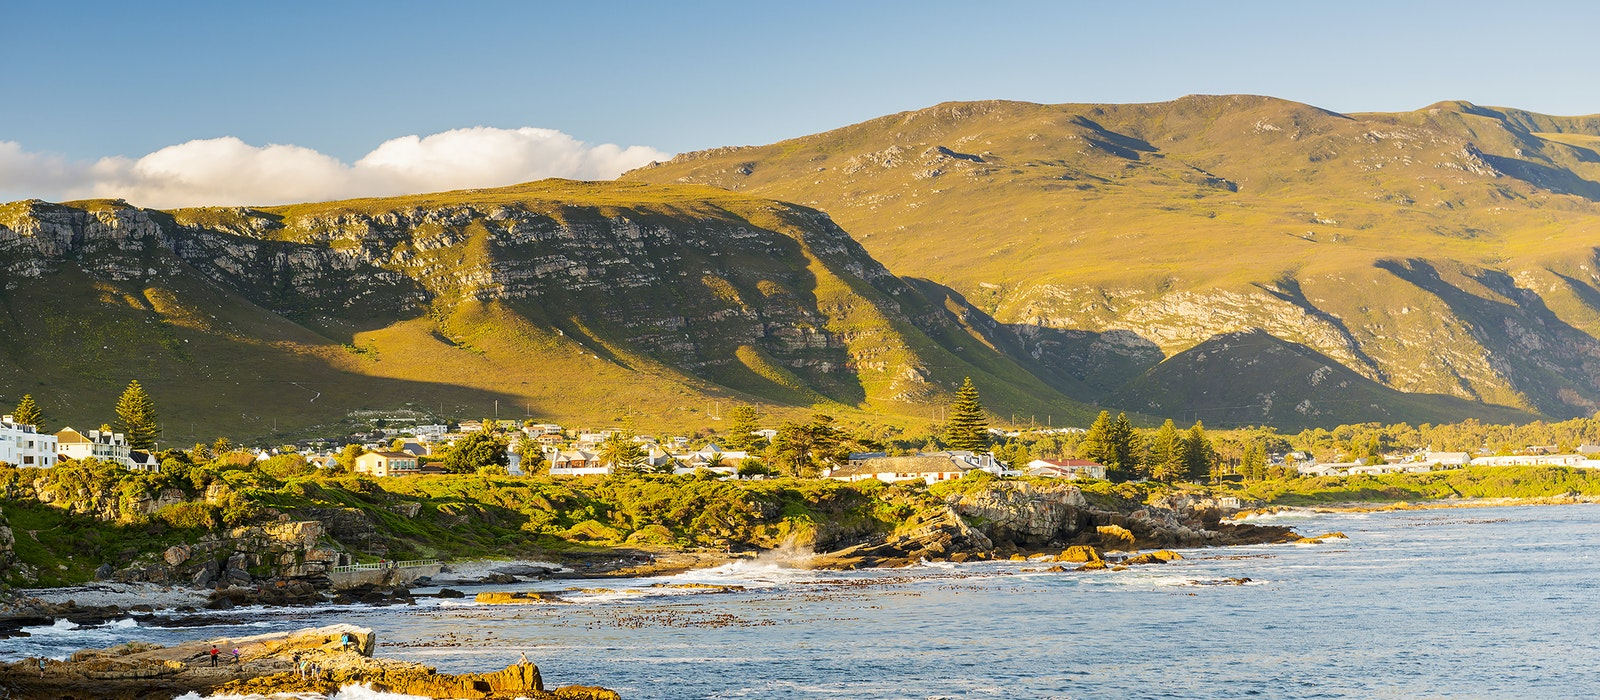 The town of Hermanus is a prime whale-watching spot.